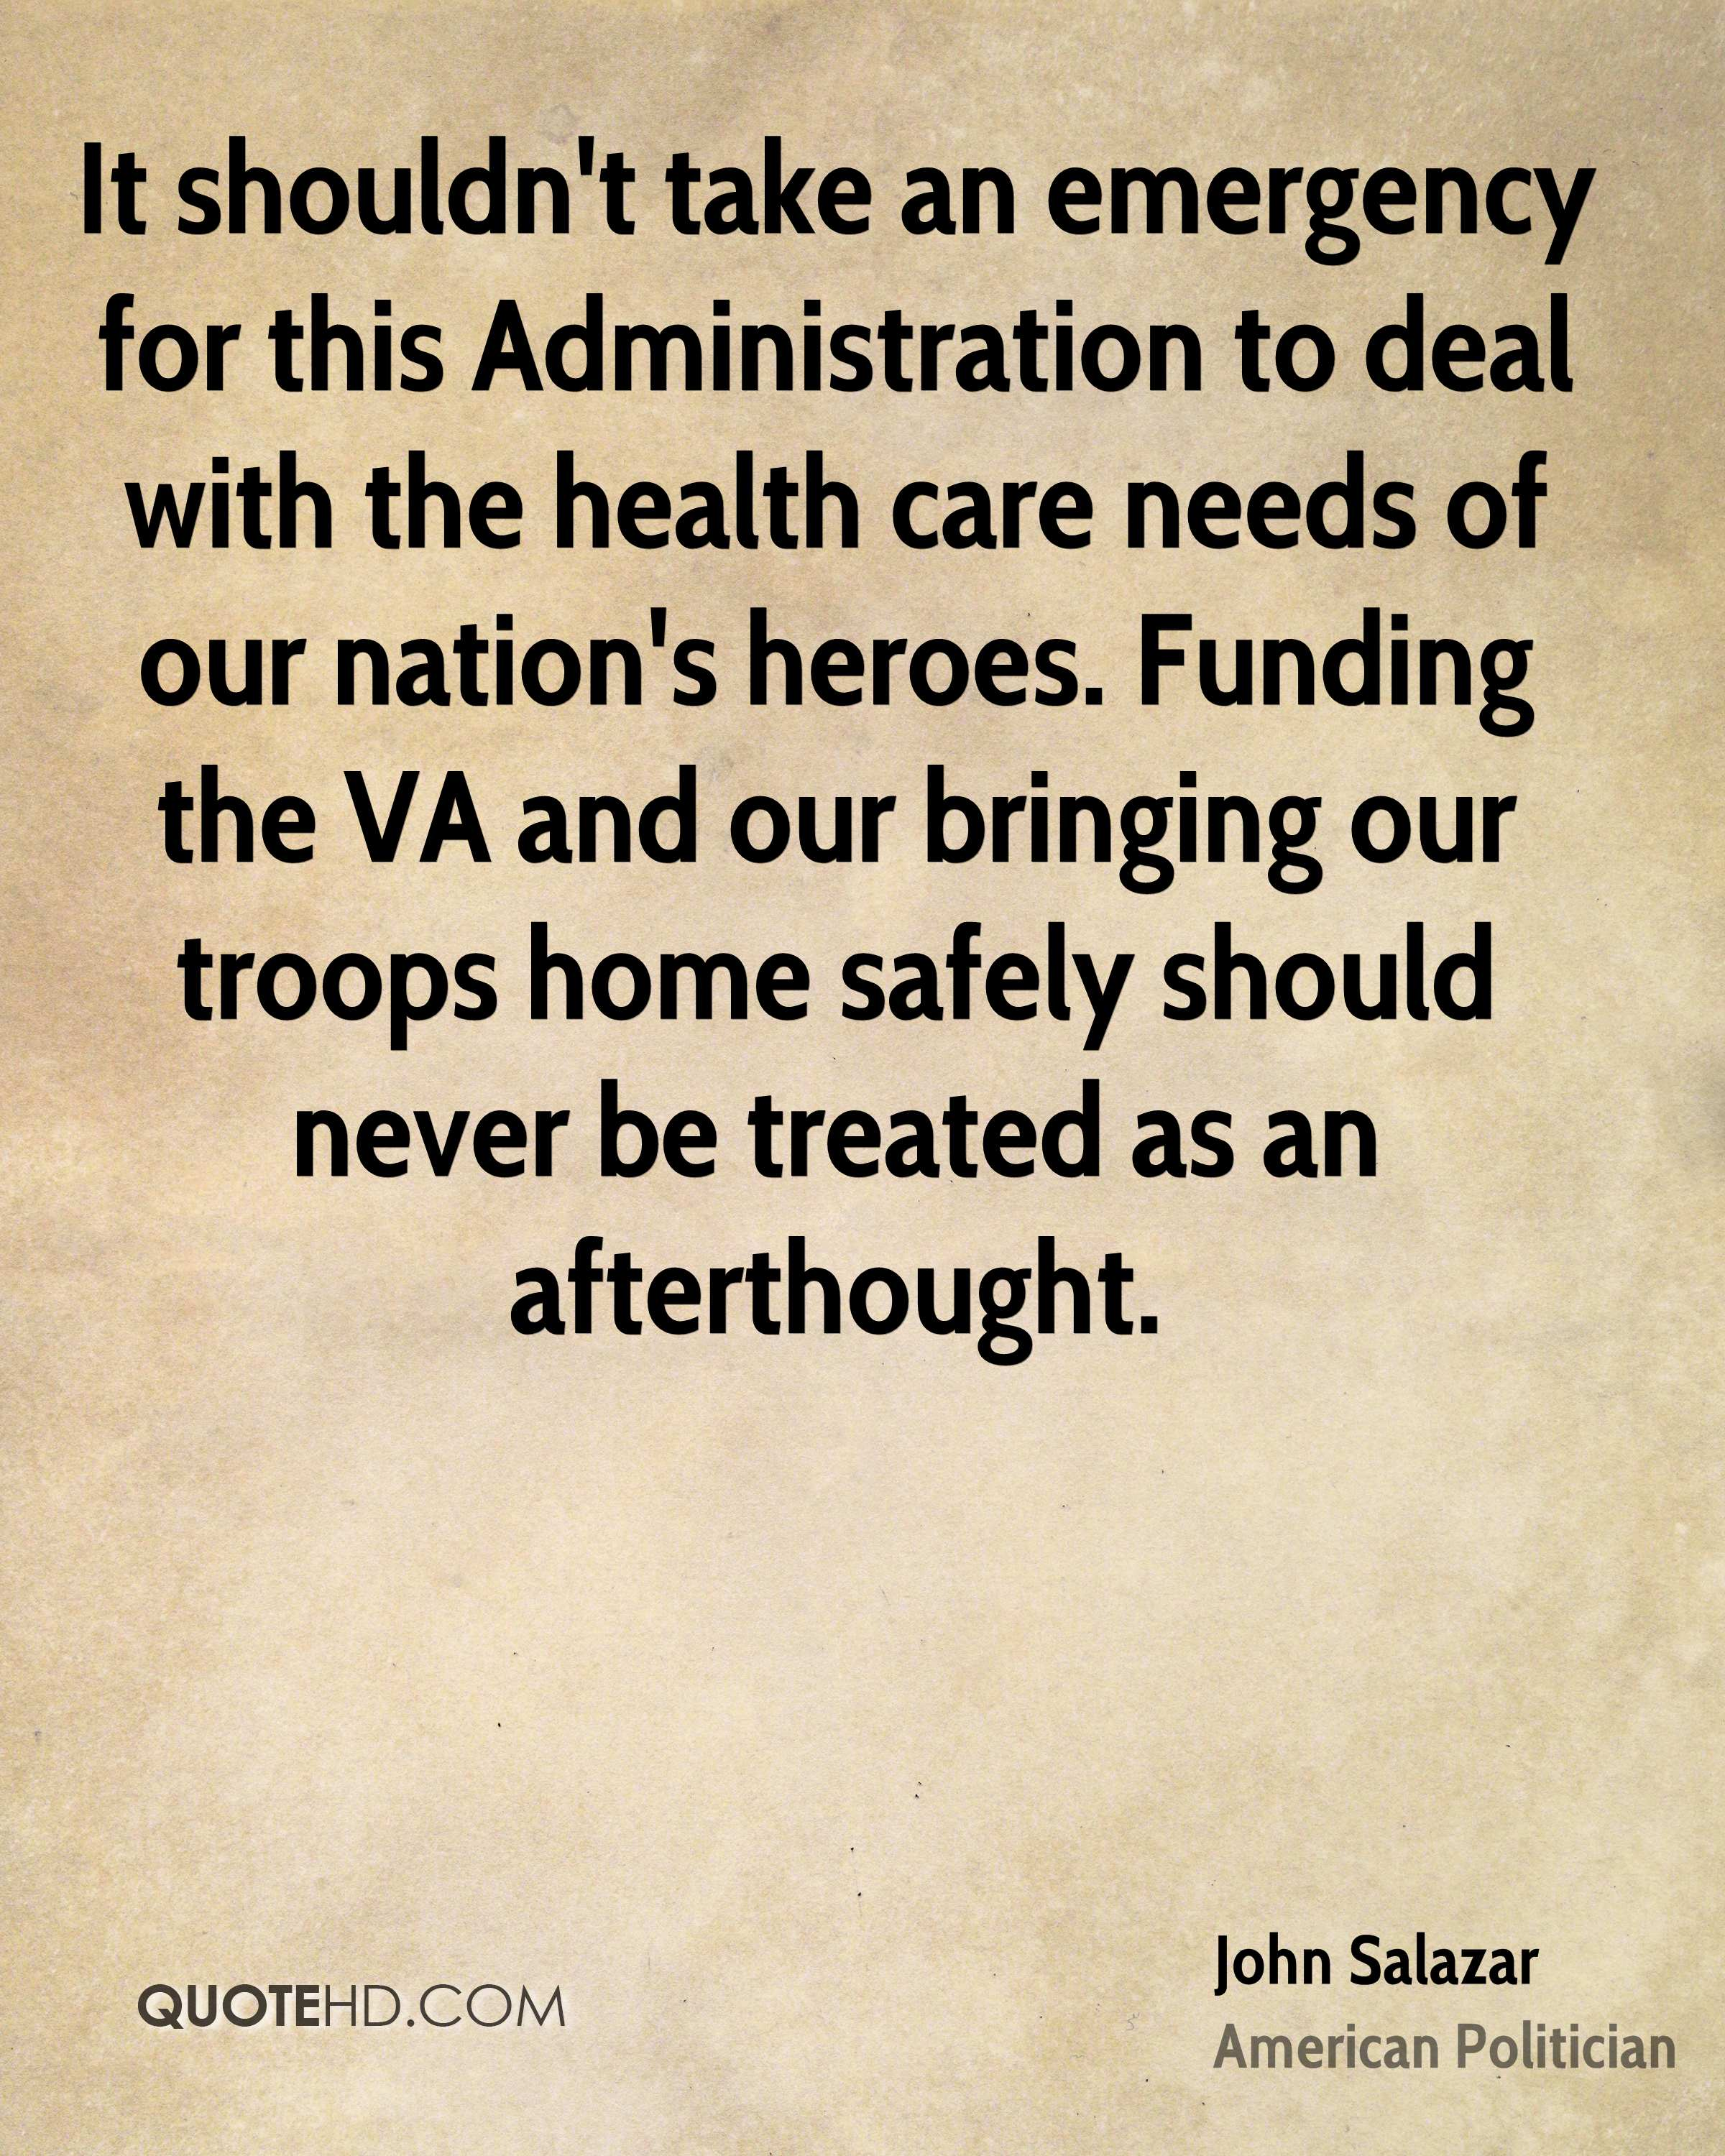 It shouldn't take an emergency for this Administration to deal with the health care needs of our nation's heroes. Funding the VA and our bringing our troops home safely should never be treated as an afterthought.